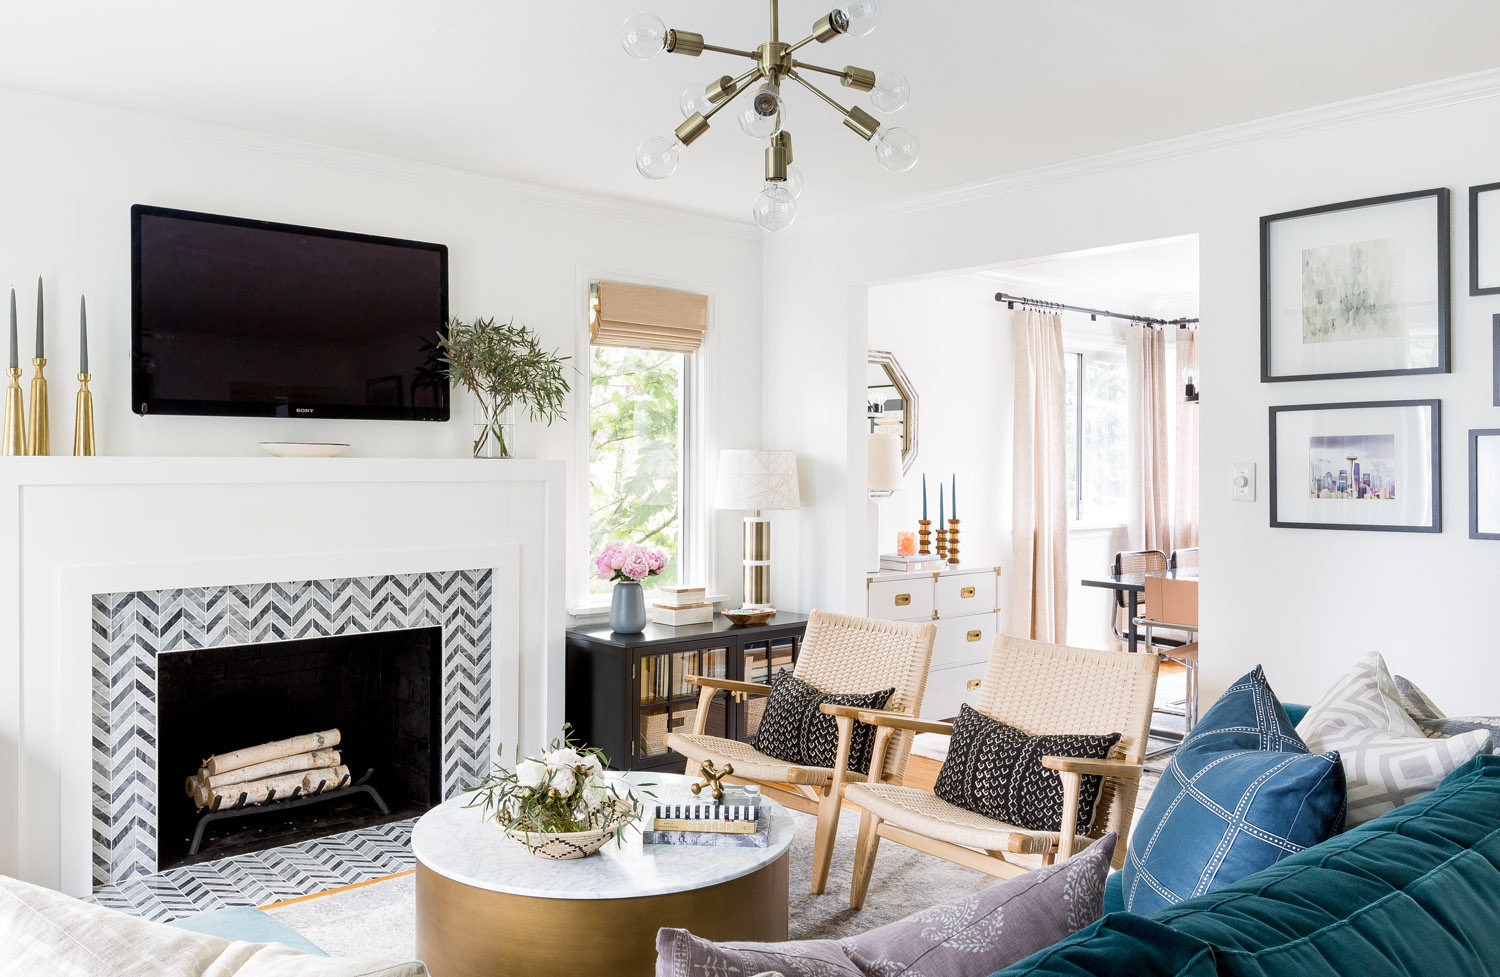 west elm living rooms small room ideas fireplace comfortable glamour in a seattle cape cod front main eclectic glam style